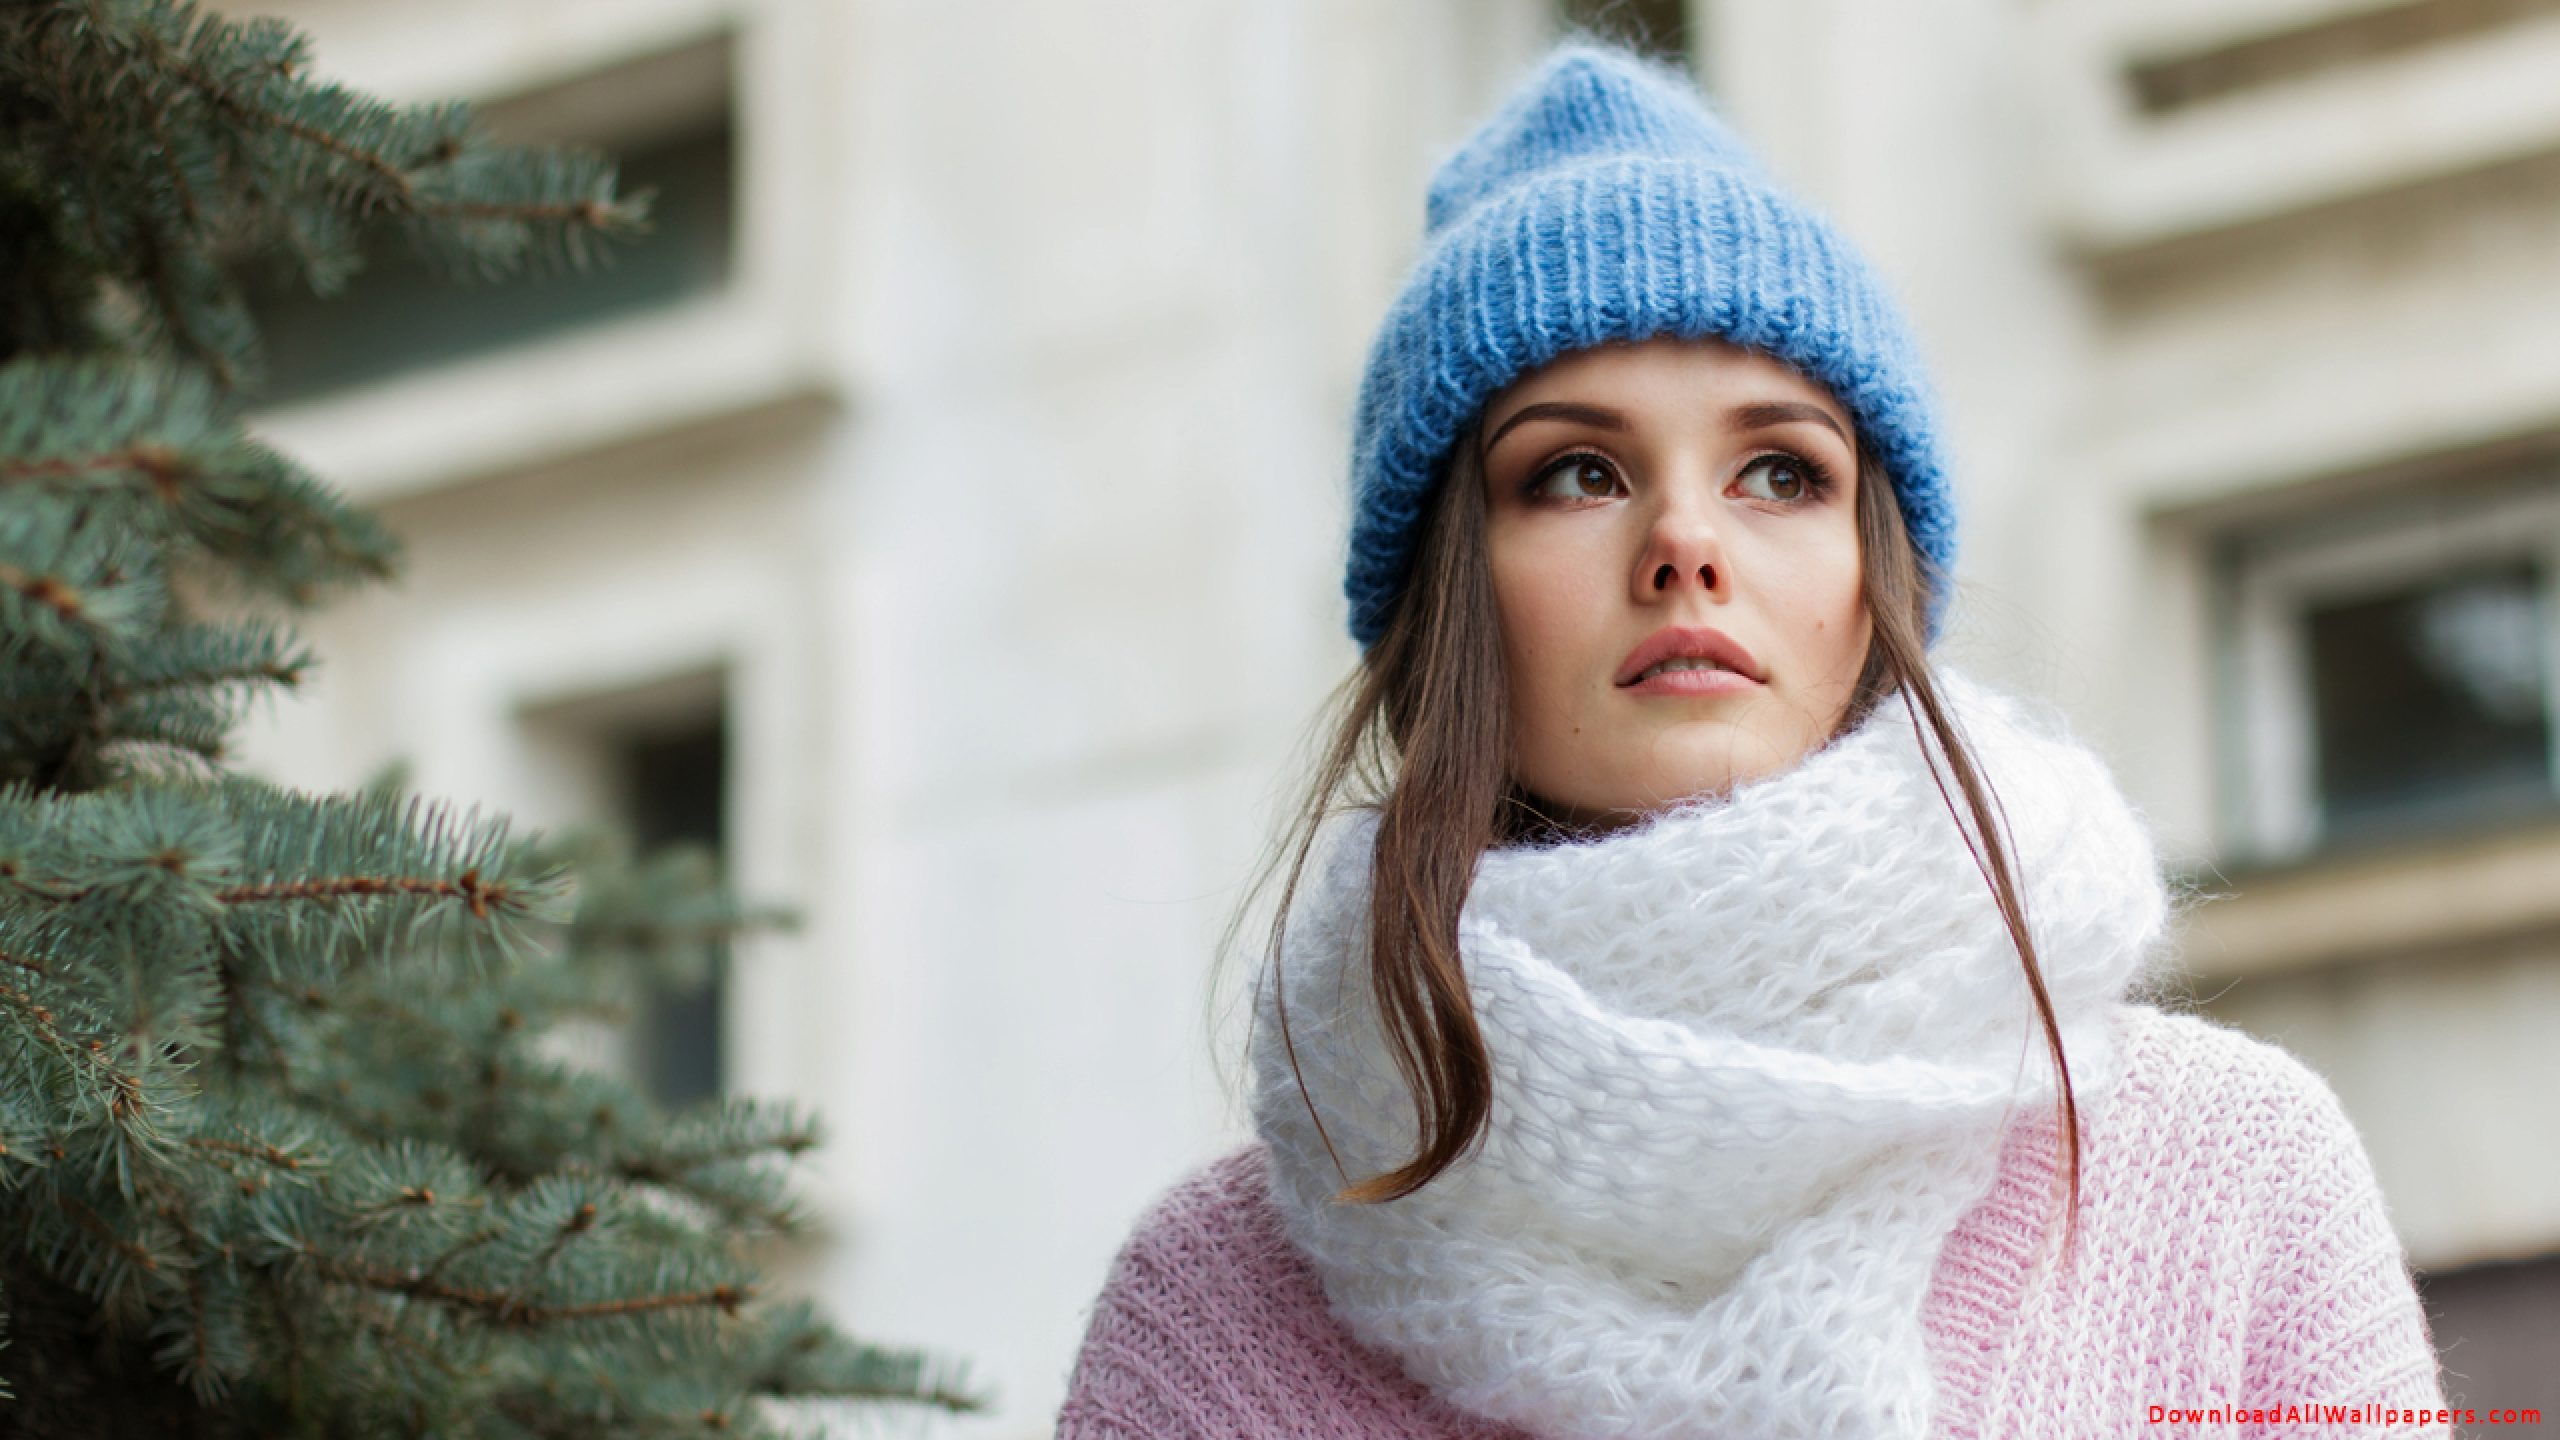 What Should Consider While Buying A Woolen Cap This Winter?